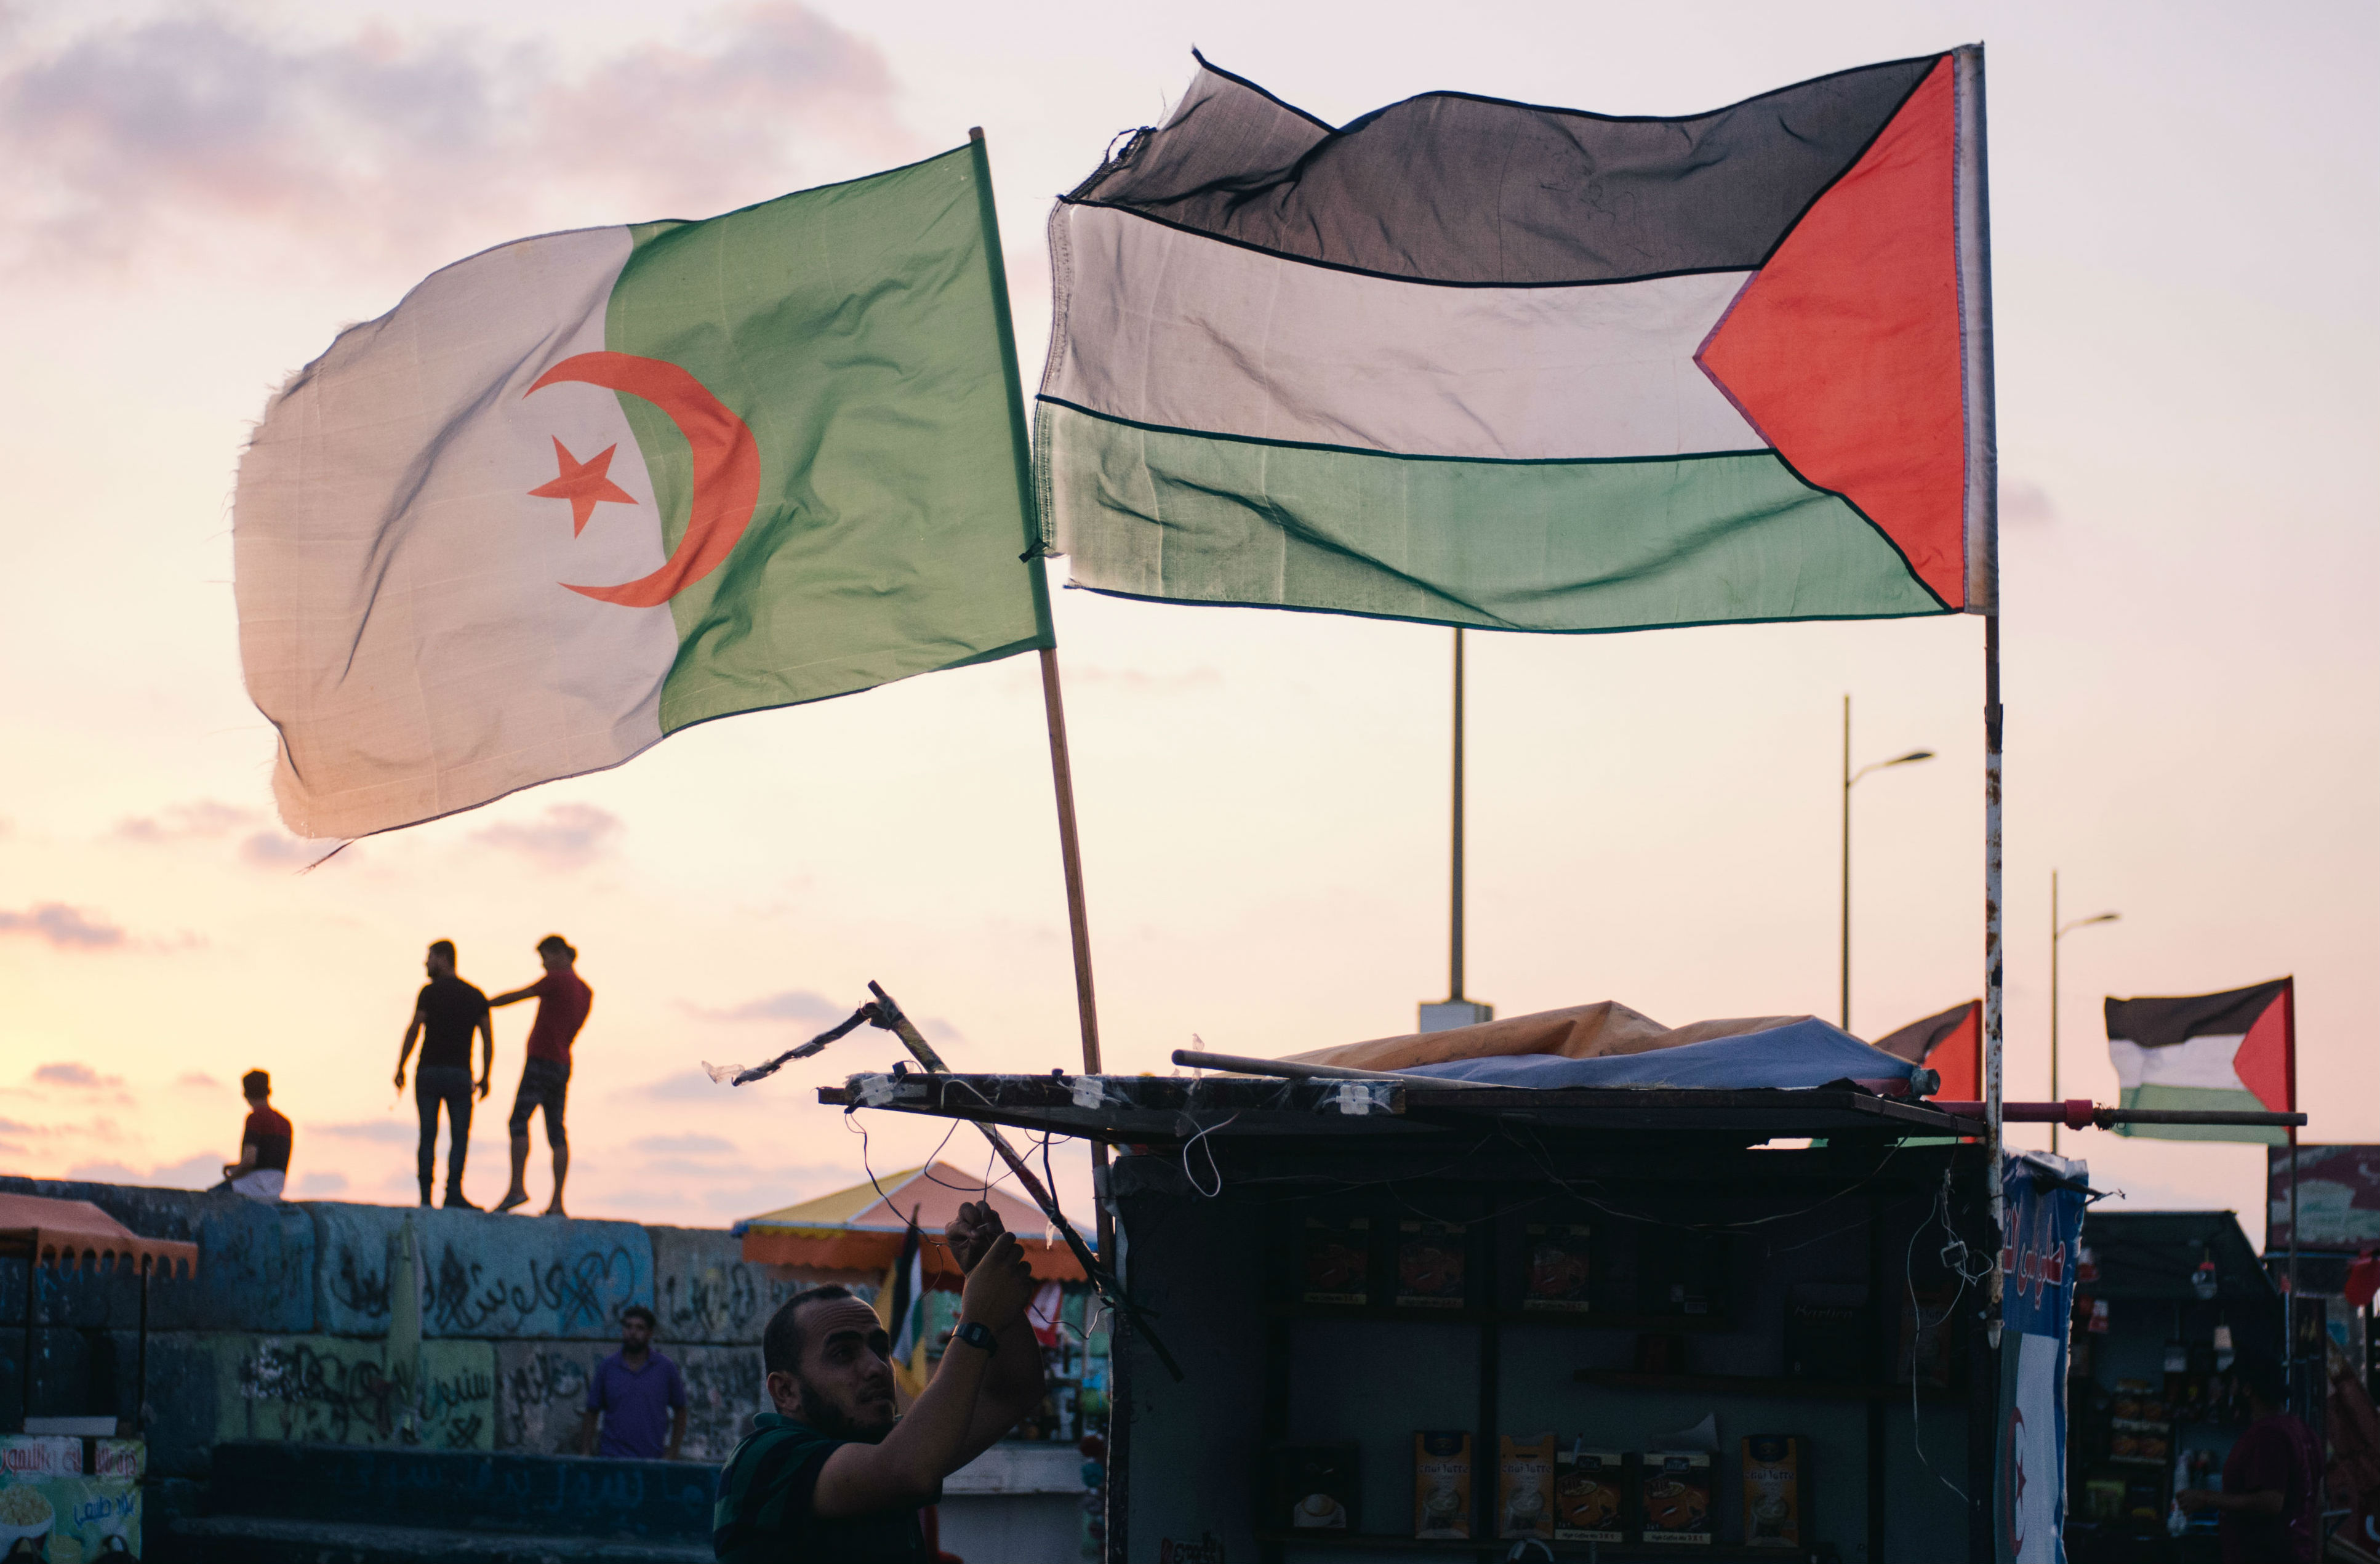 A vendor sets up his coffee stall decorated with the Algerian flag, catering for the families who whittle away the evening hours in the port. Palestinian youths climb up the breeze blocks behind him, posing for selfies against the sunset